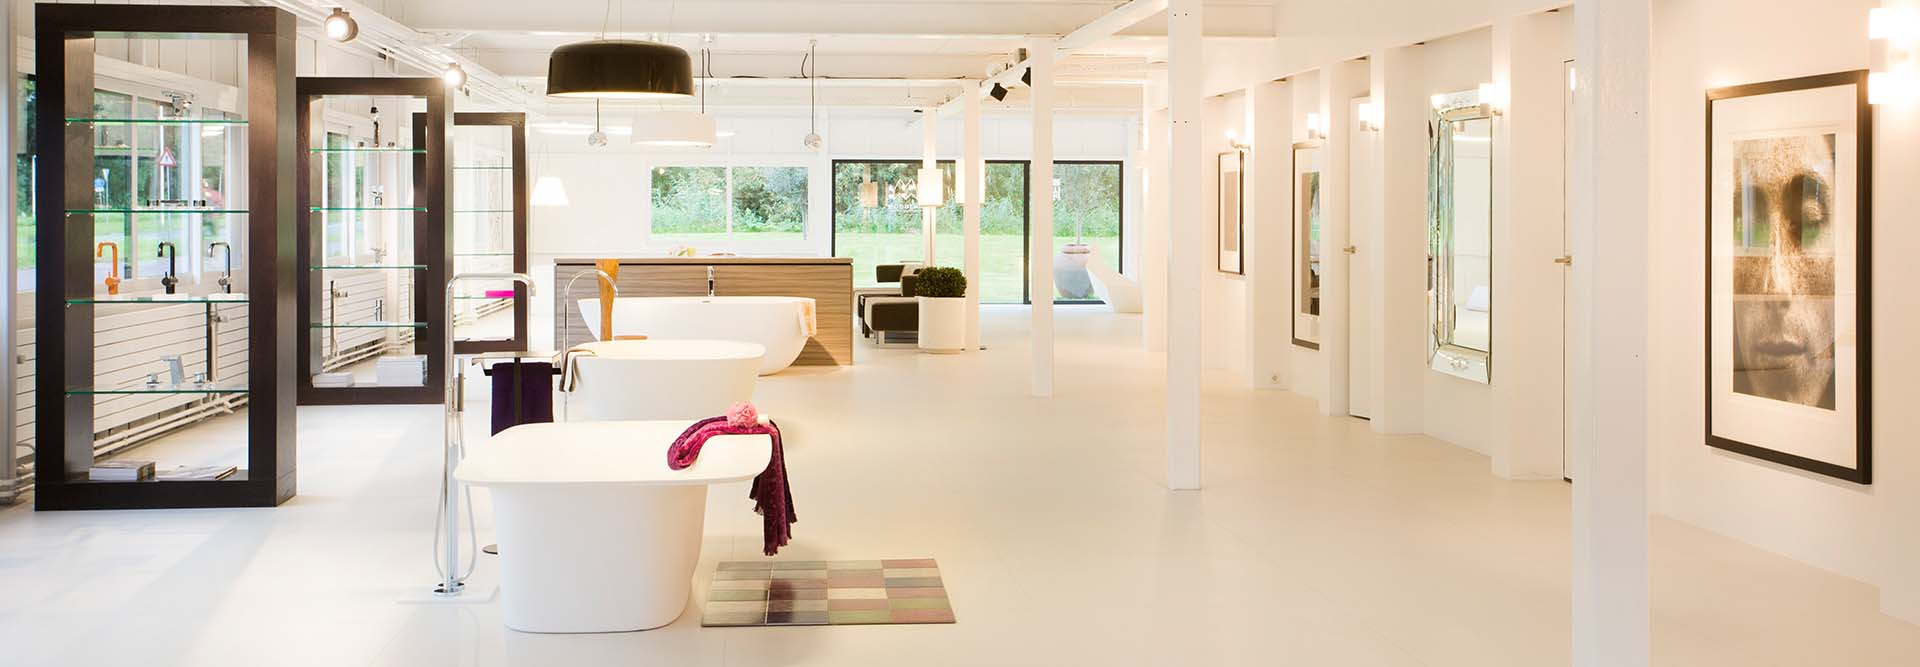 Showroom - Sjartec - Badkamers, Wellness en Tegels in Leiden